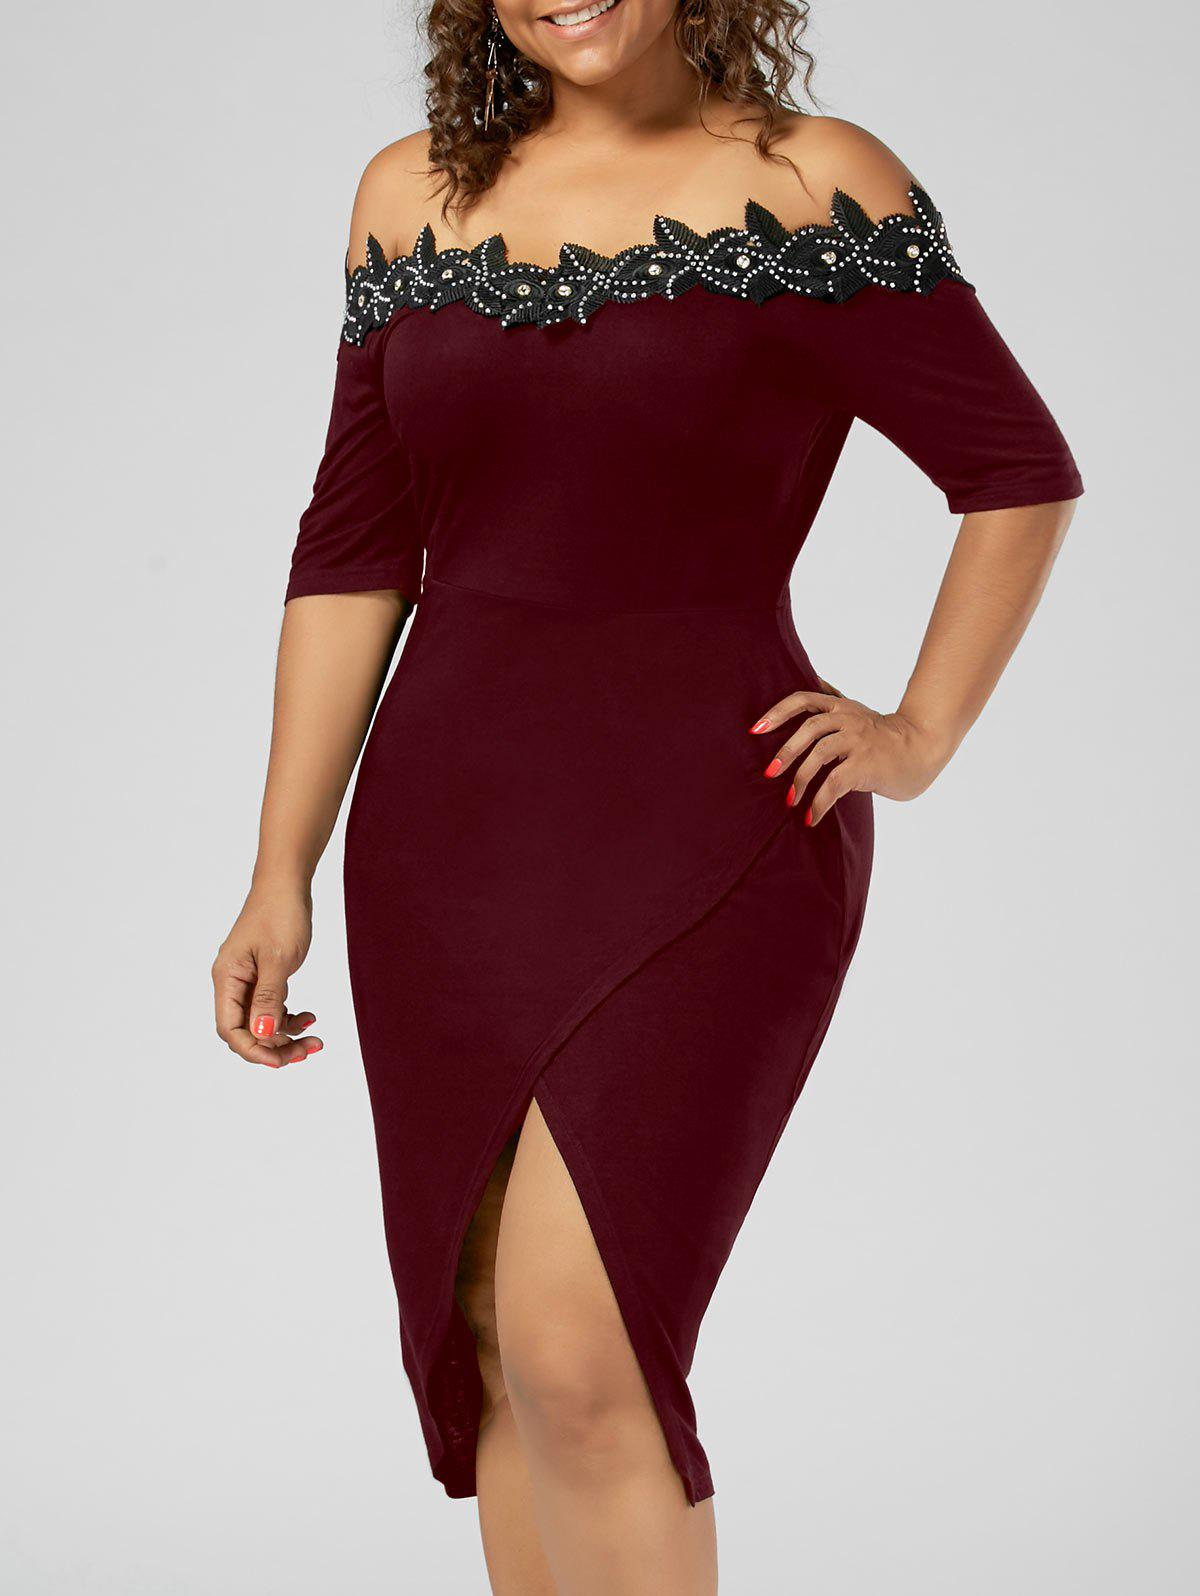 Plus Size Off the Shoulder Applique Pencil DressWOMEN<br><br>Size: 4XL; Color: WINE RED; Style: Brief; Material: Cotton,Spandex; Silhouette: Sheath; Dresses Length: Knee-Length; Neckline: Off The Shoulder; Sleeve Length: Short Sleeves; Pattern Type: Solid; With Belt: No; Season: Summer; Weight: 0.3500kg; Package Contents: 1 x Dress;